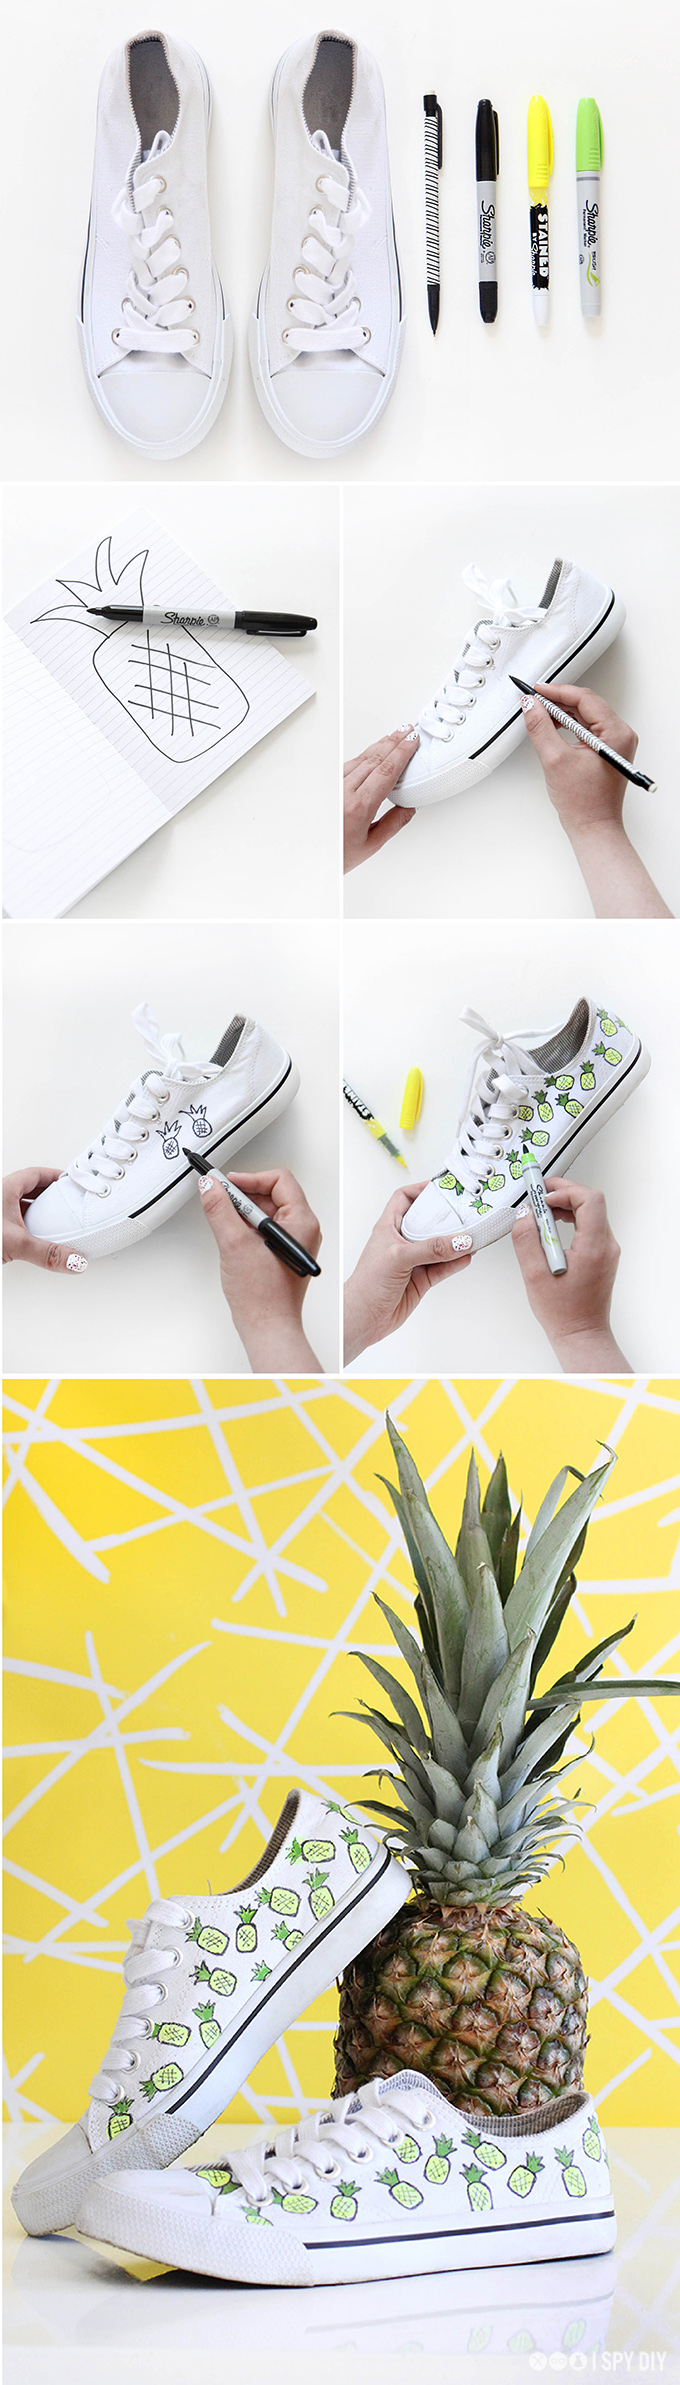 ispydiy_pineappleshoes_steps